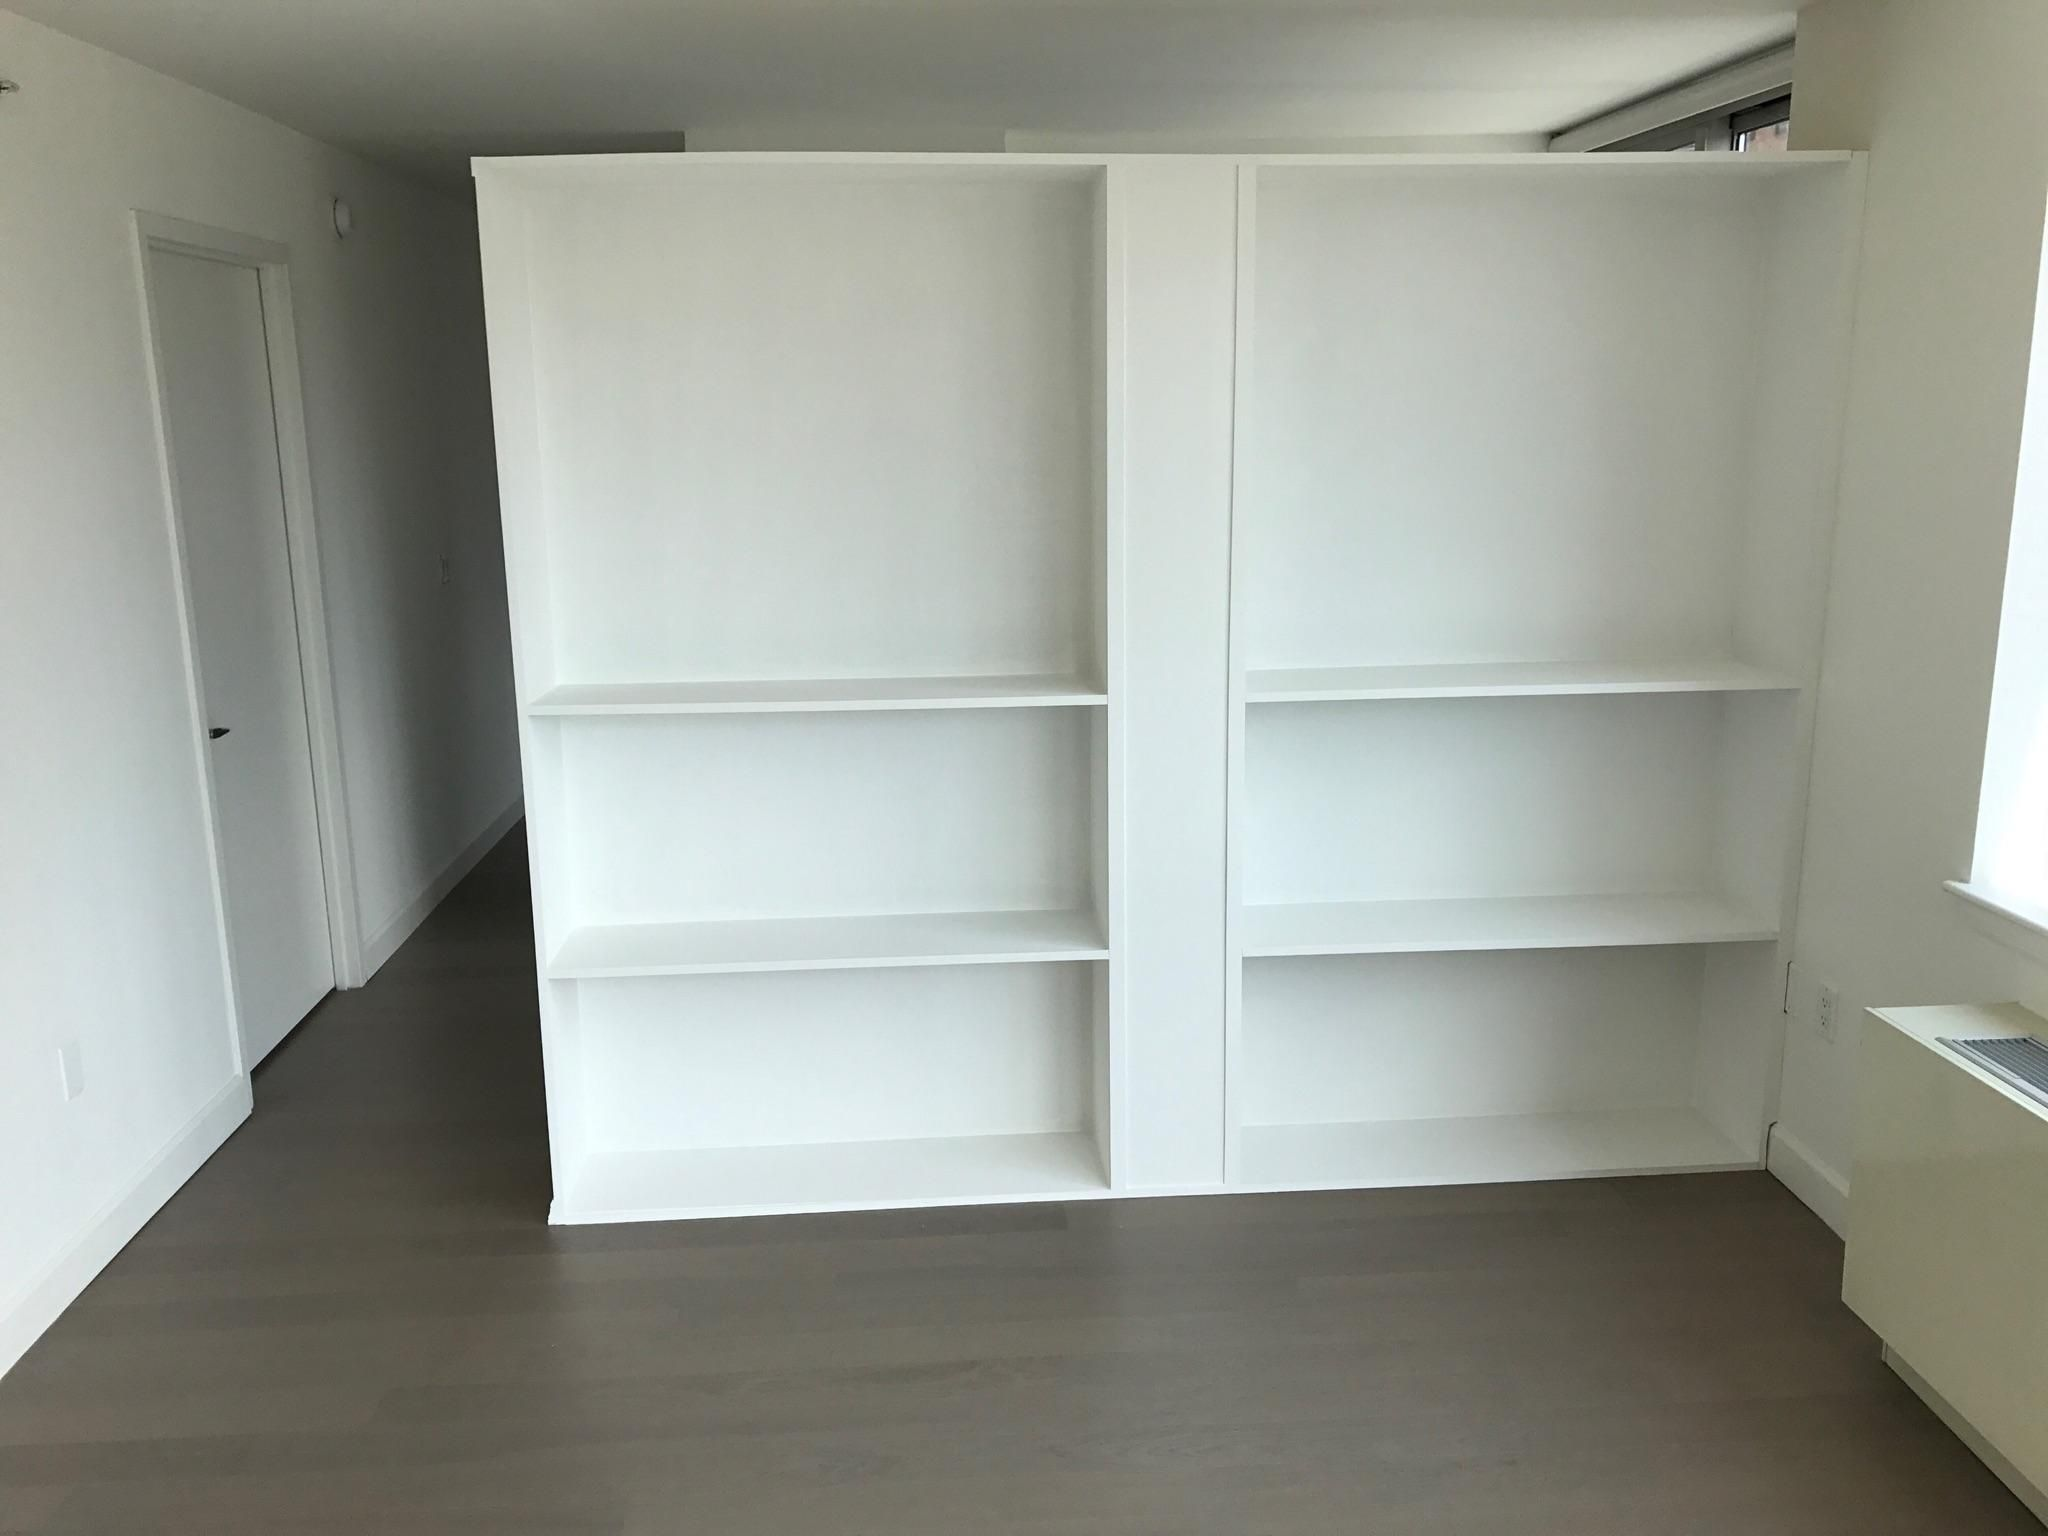 wall 2 wall ny in 2019 custom bookcase walls bookcase wall rh pinterest com